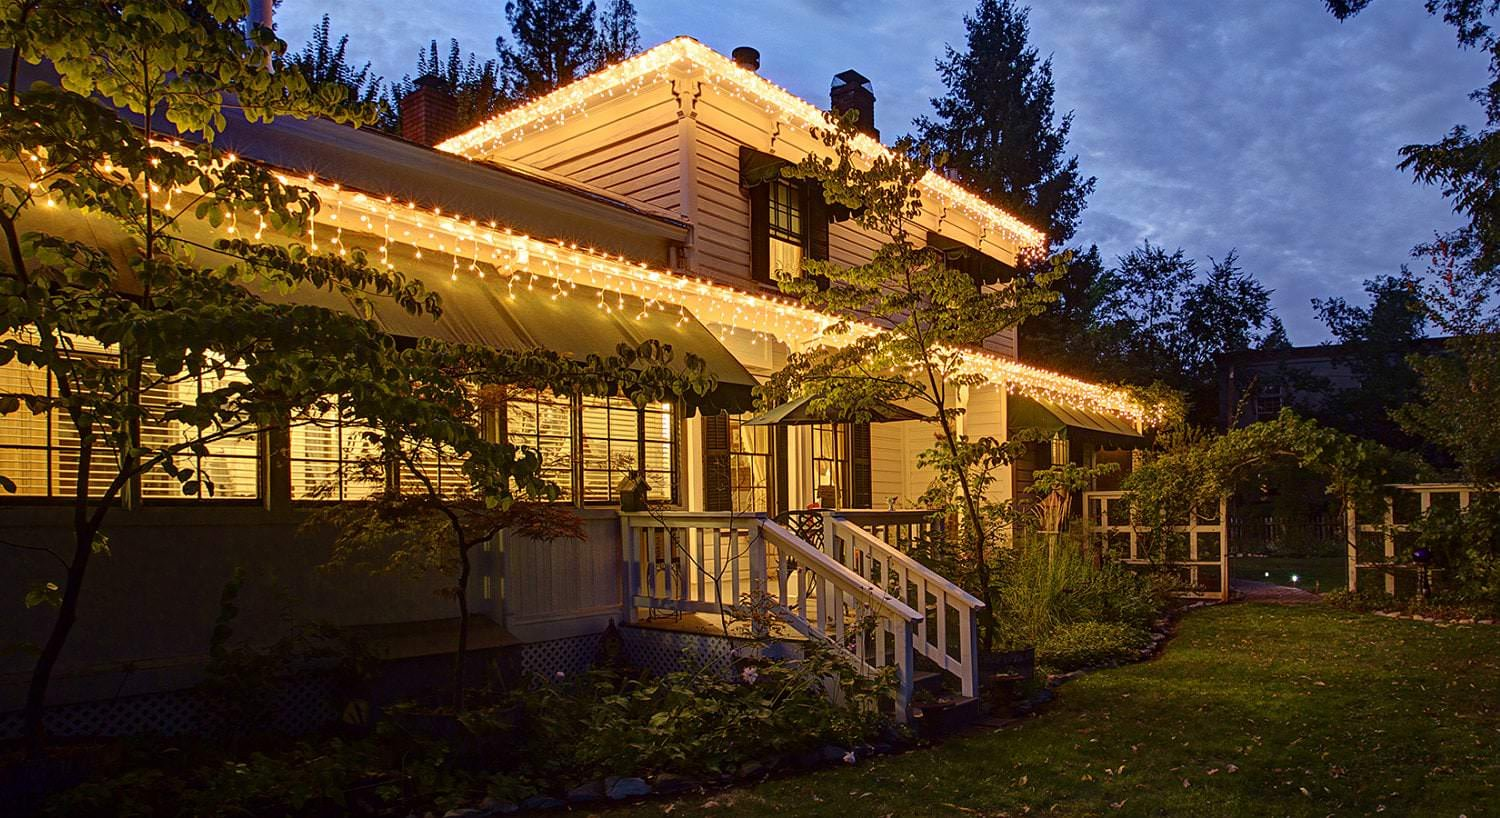 Exterior view of Dunbar House and green lawn at dusk brightly lit with interior lights and exterior twinkle lights